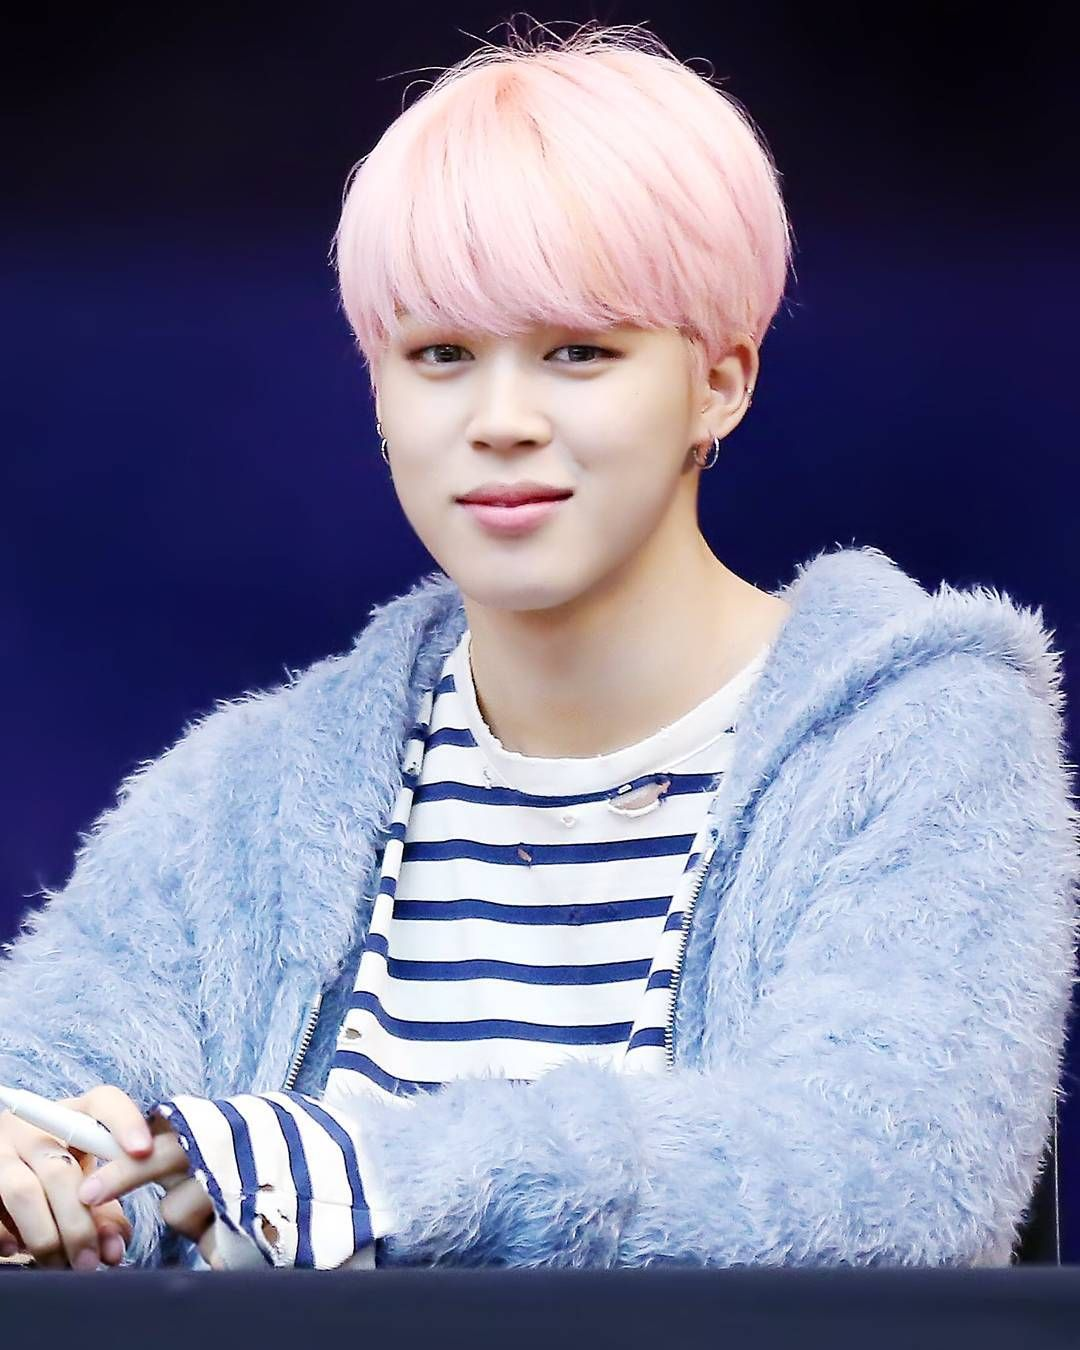 I Love Jimin With Pink Hair 170224 Myeongdong Fansign